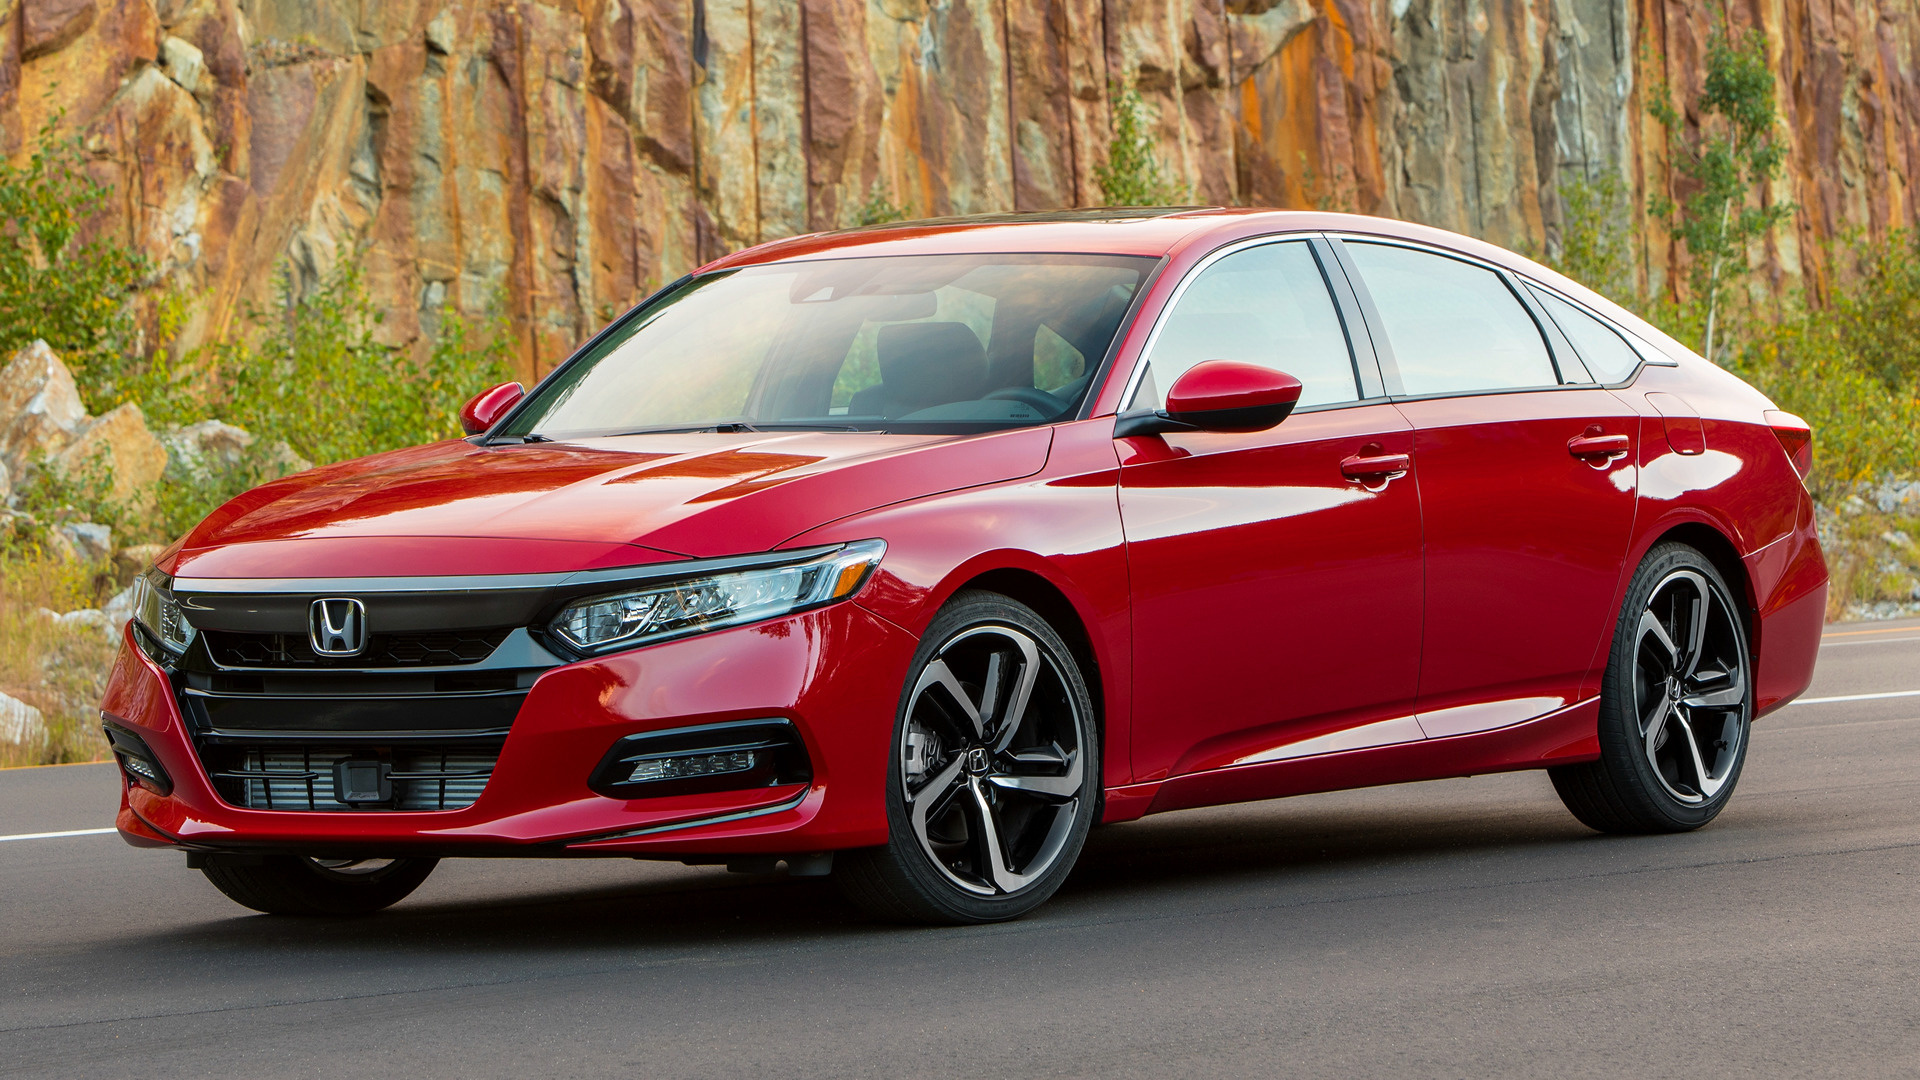 Honda Accord Sport (2018) Wallpapers and HD Images - Car Pixel